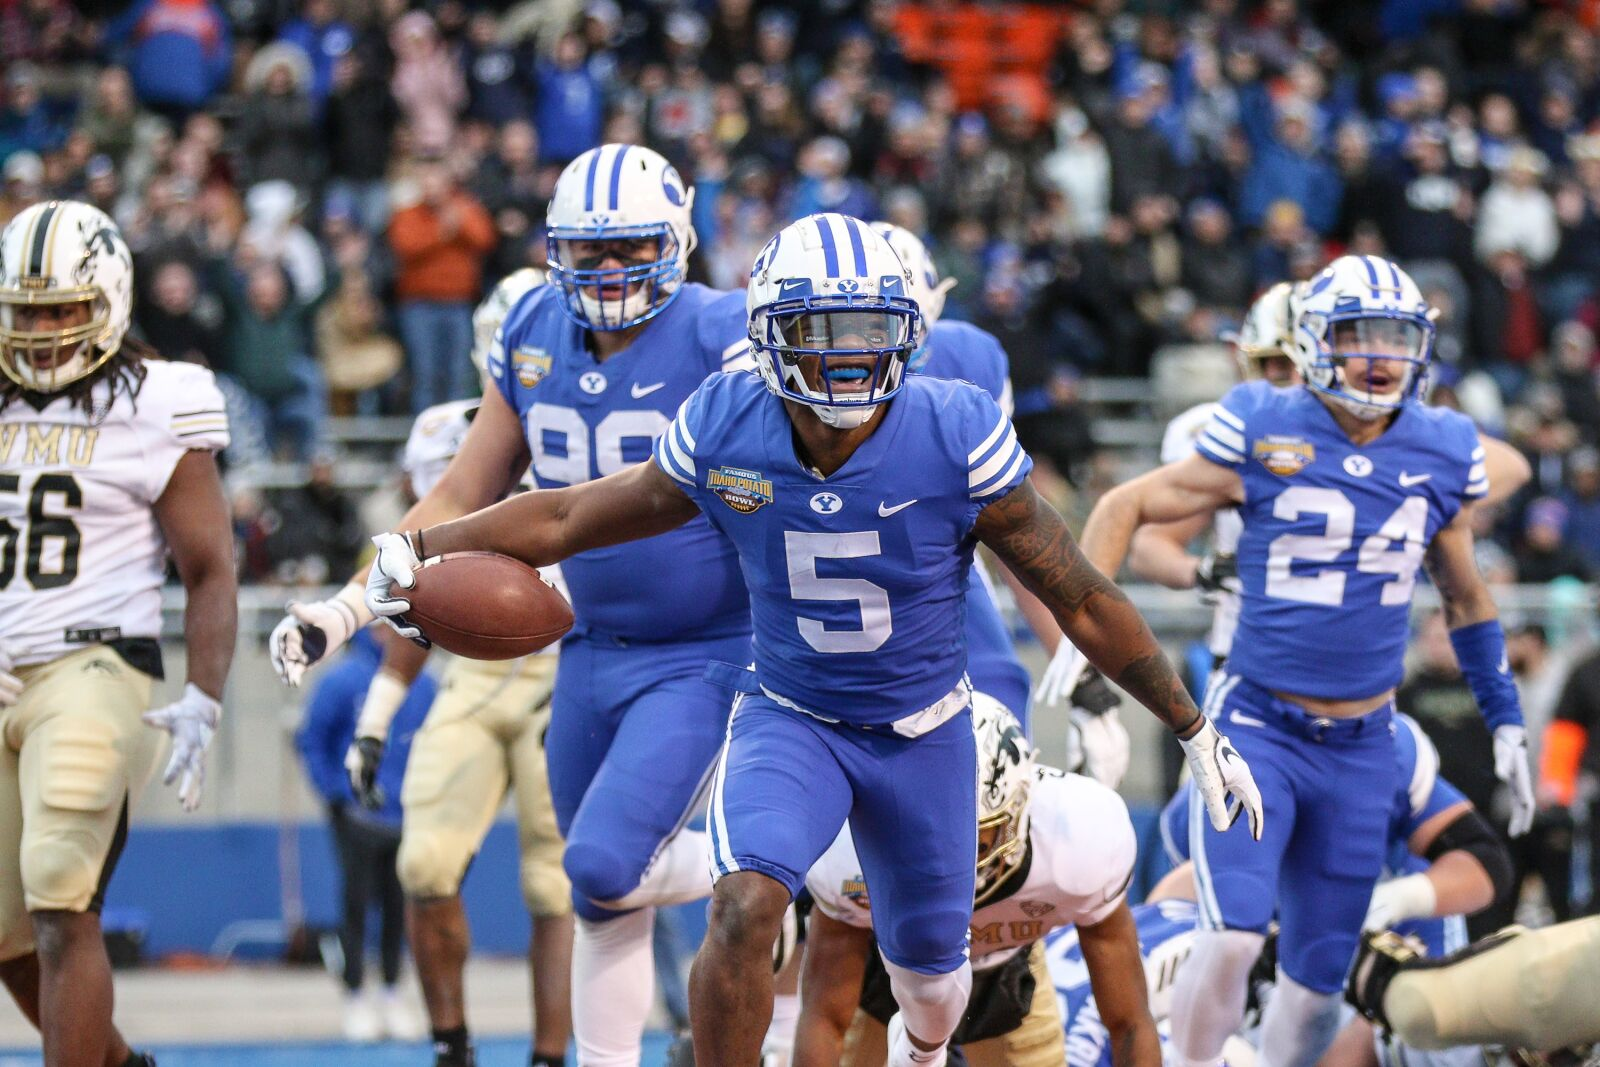 BYU Football: Cougars to drop the navy, go all royal